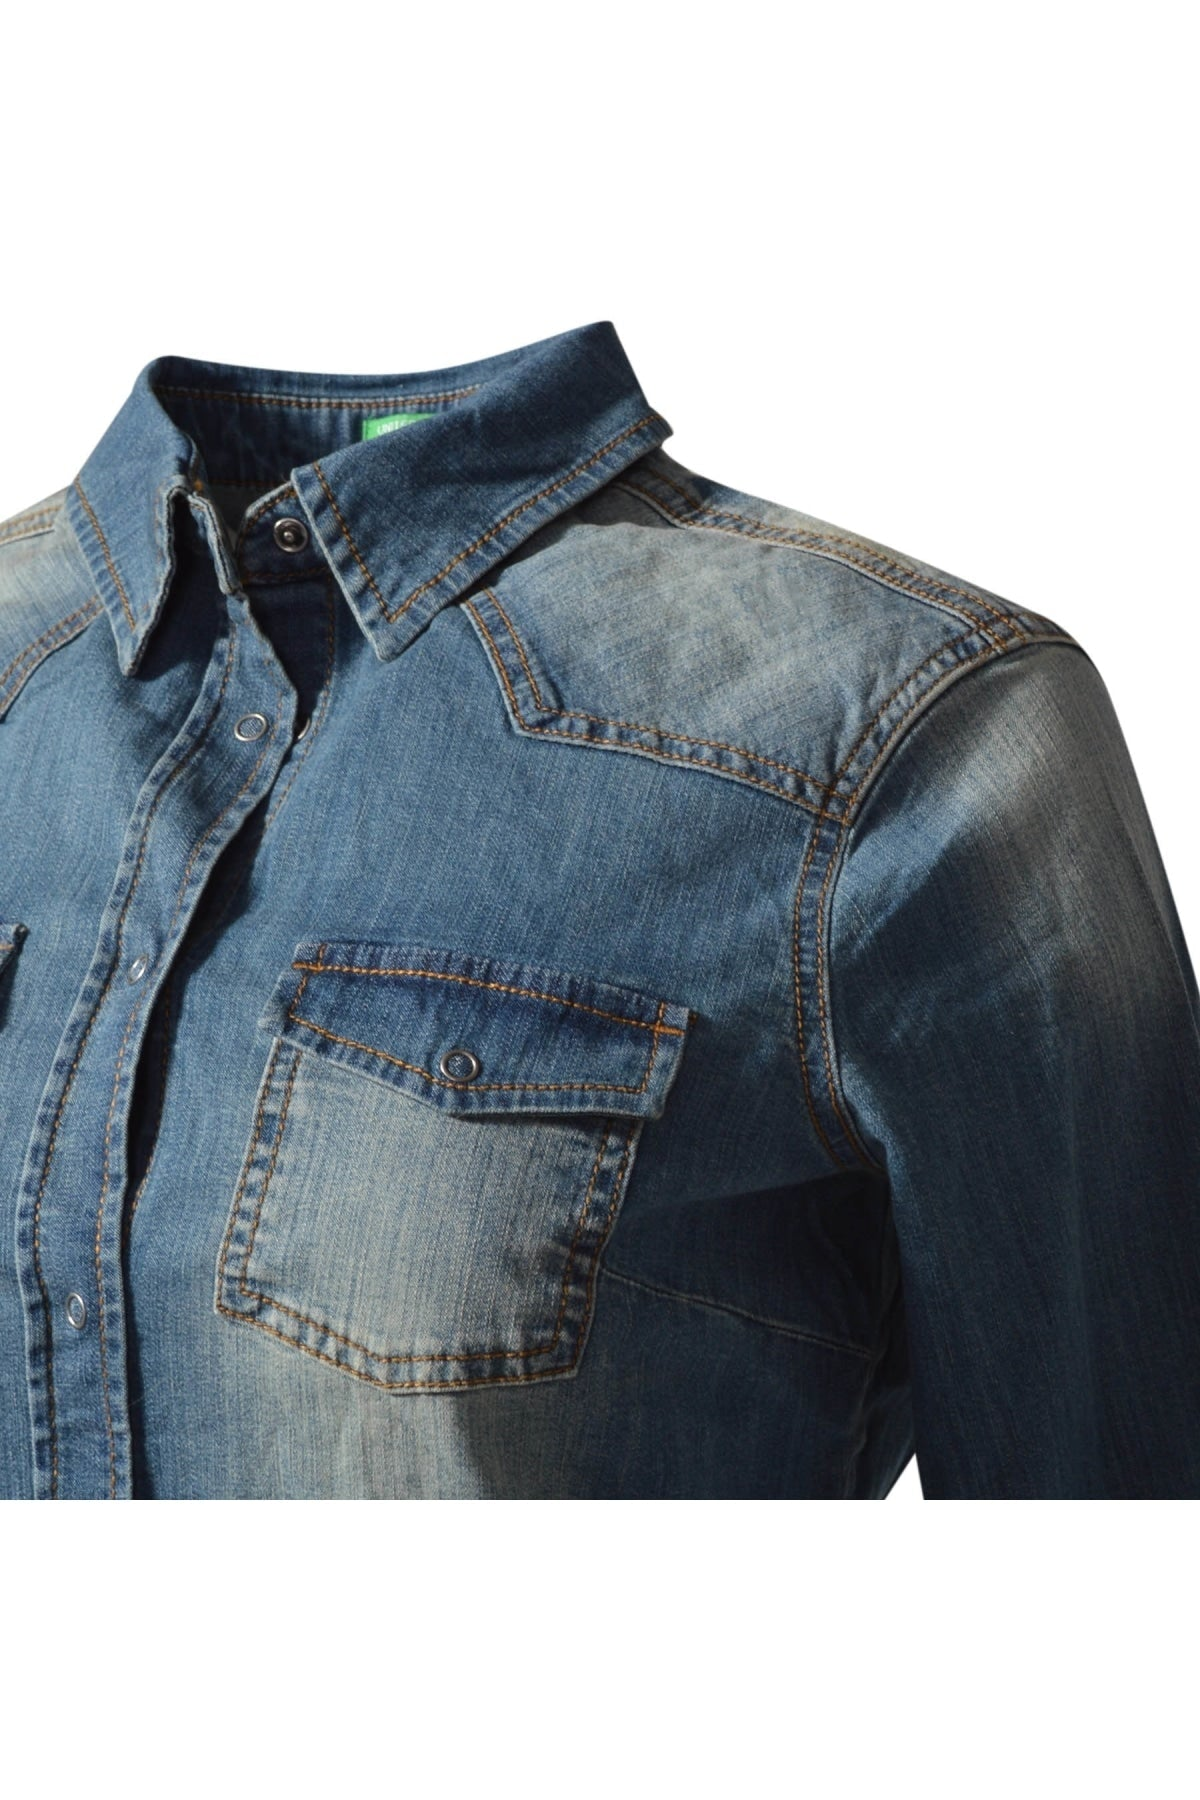 Benetton Benetton Vintage Denim Shirt | Secret Label